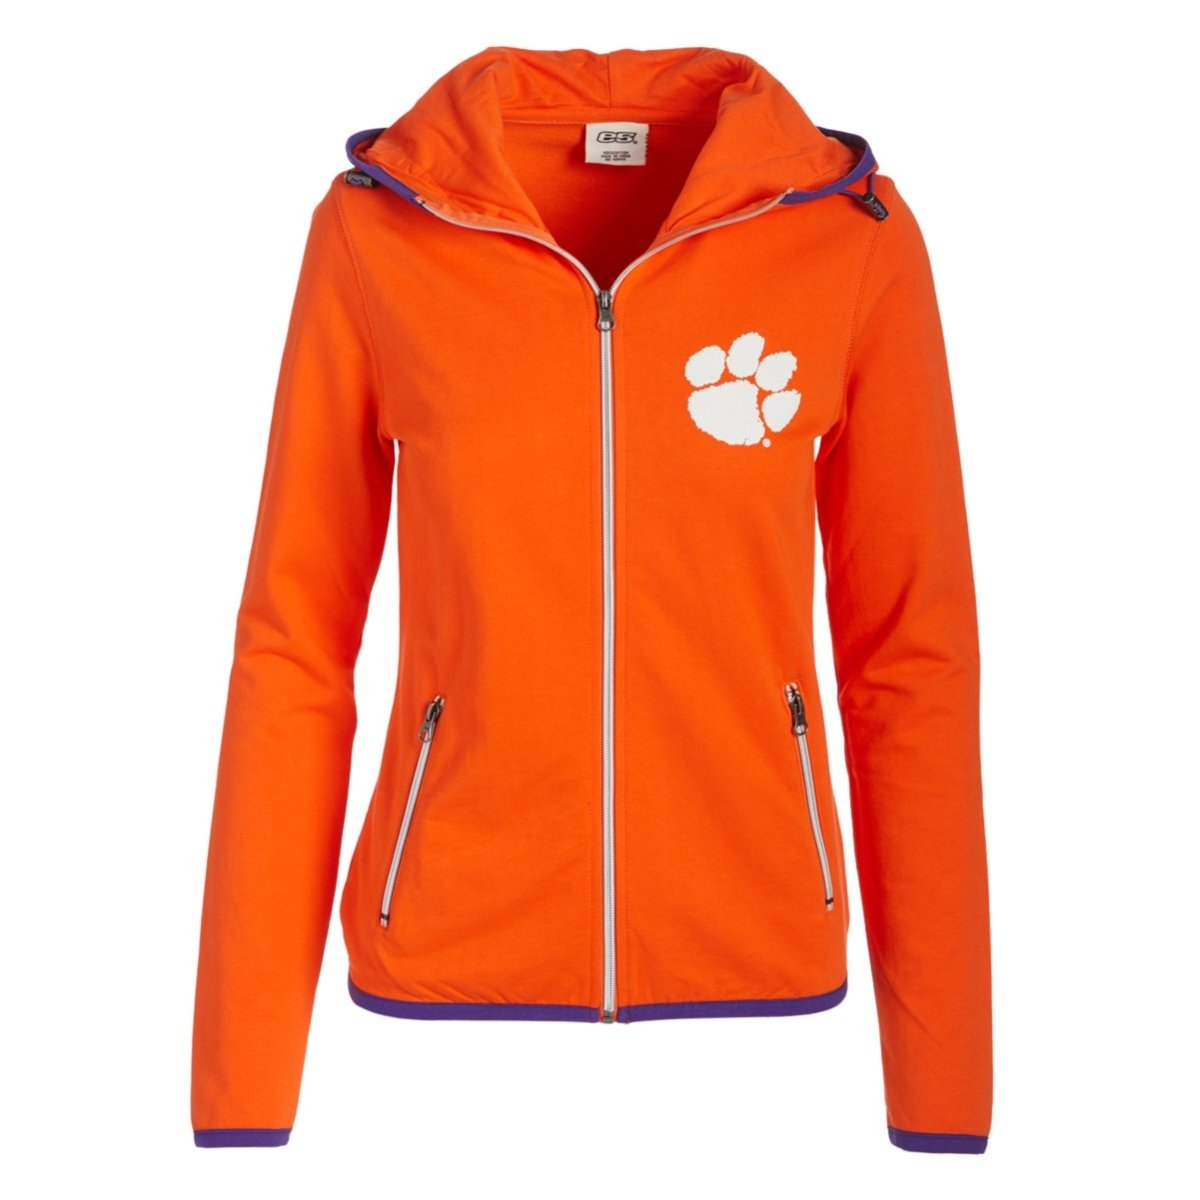 Ladies French Terry Full Zip Hoodie White Paw Left Chest Clemson Arch on Back - Mr. Knickerbocker